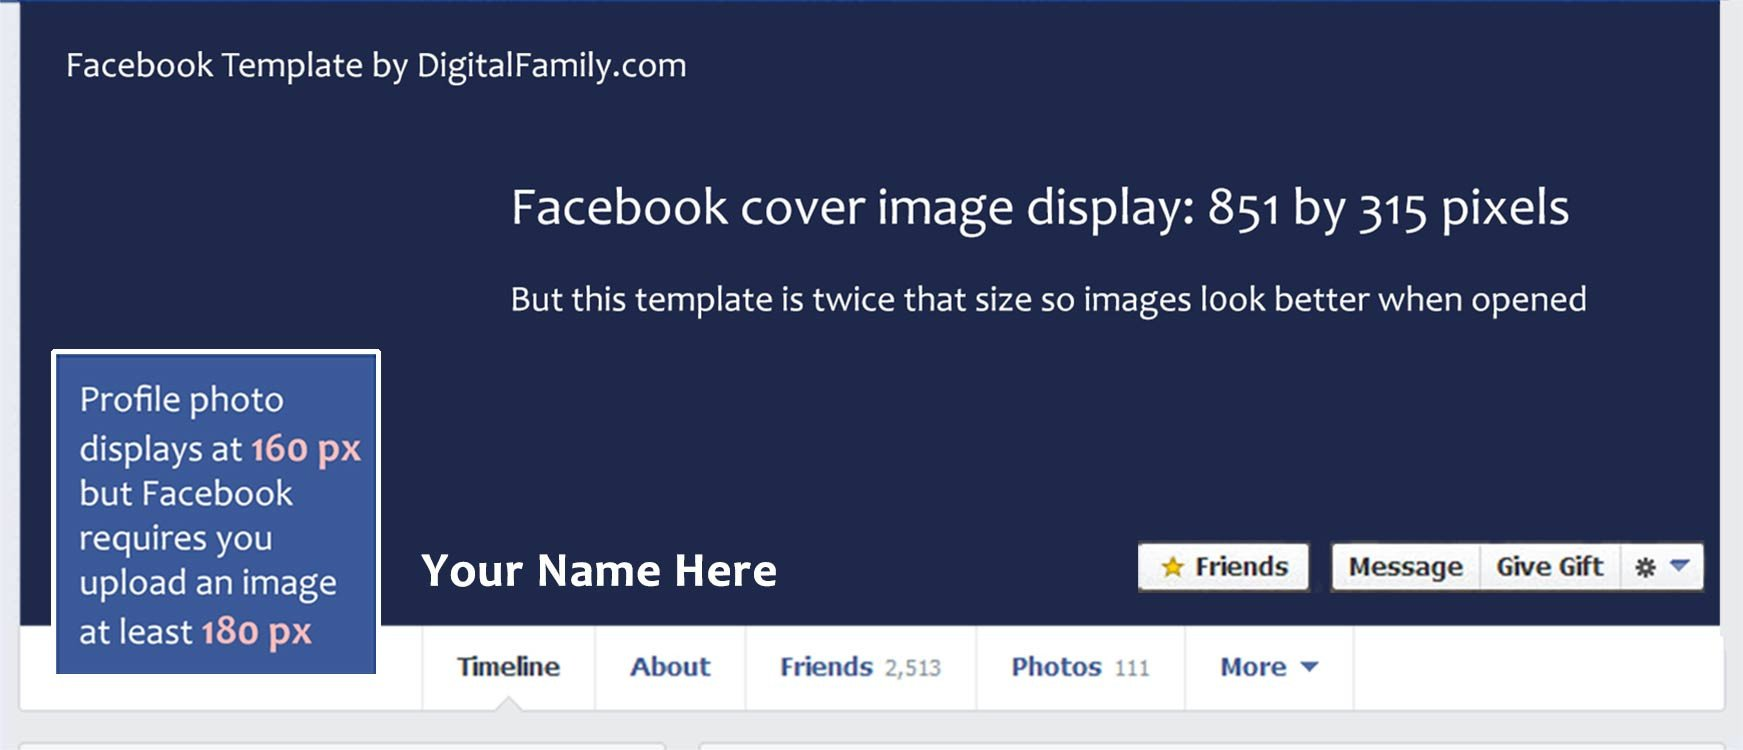 Free Facebook Covers Templates My Free Template is Twice the Size Re Mends